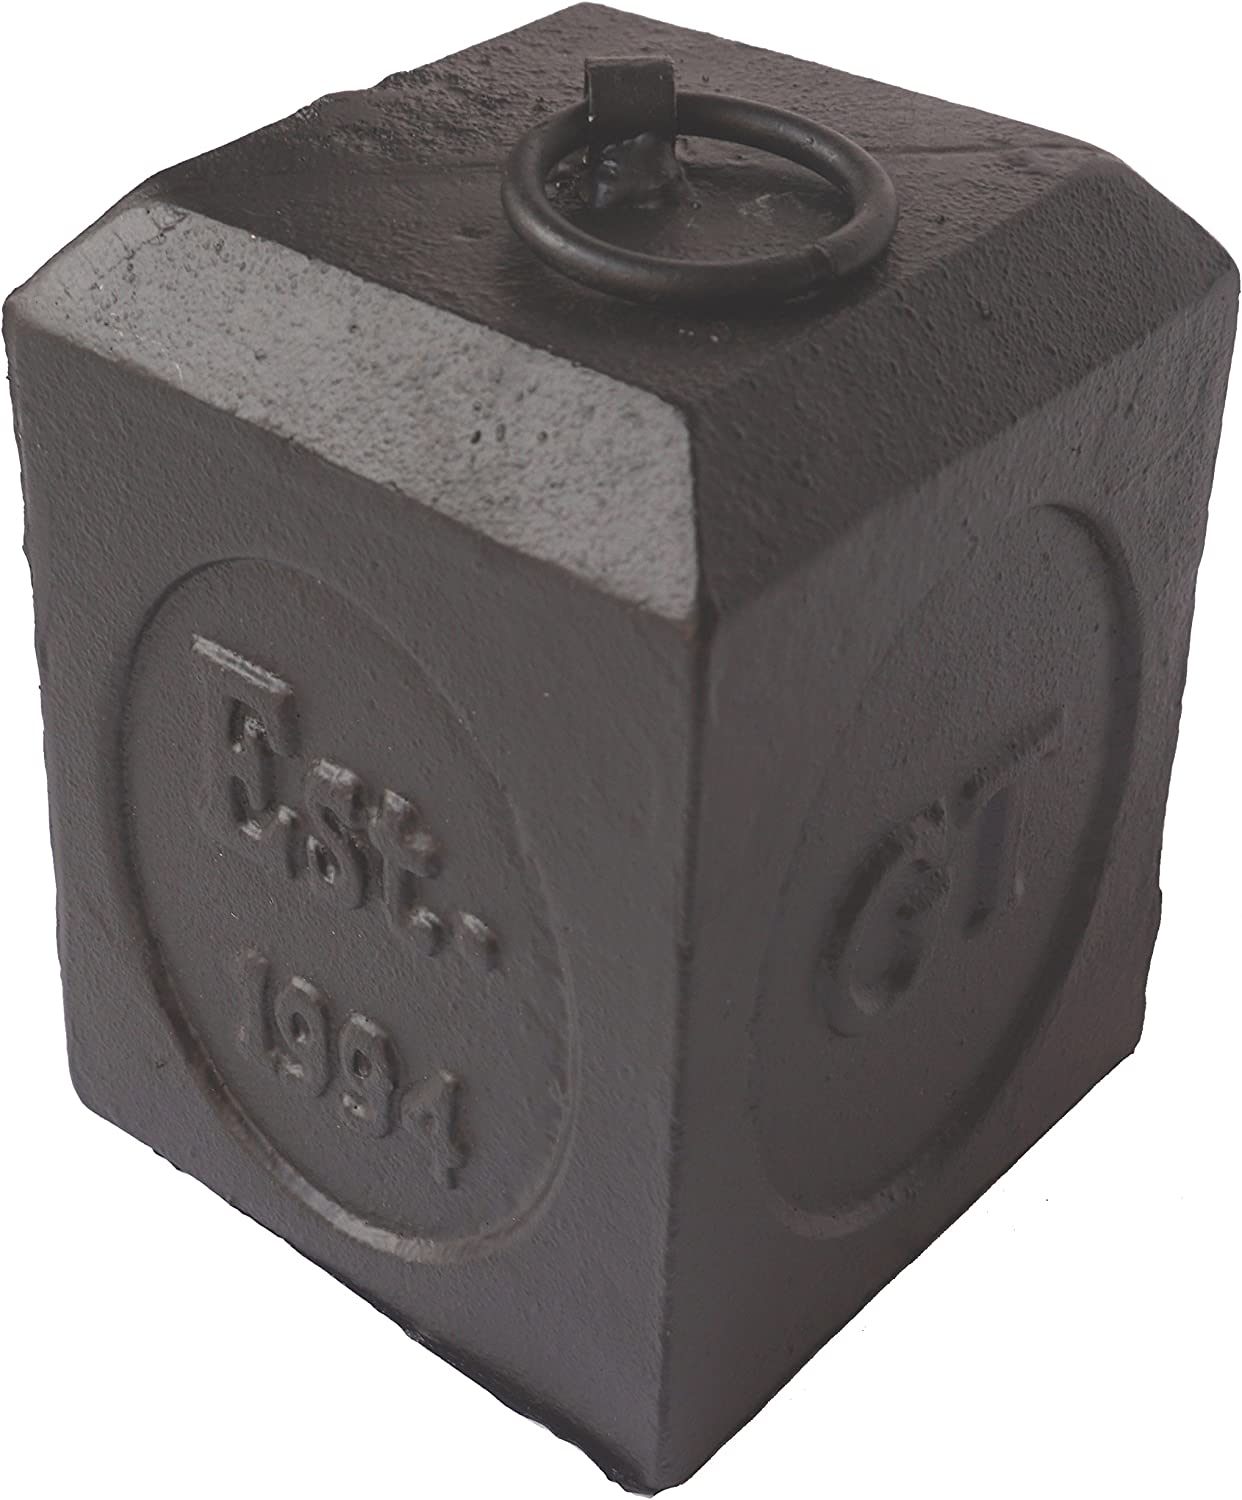 Lulu Decor Cast Iron Door Doorstops Square Stopper Stop Cheap super special Limited time trial price price